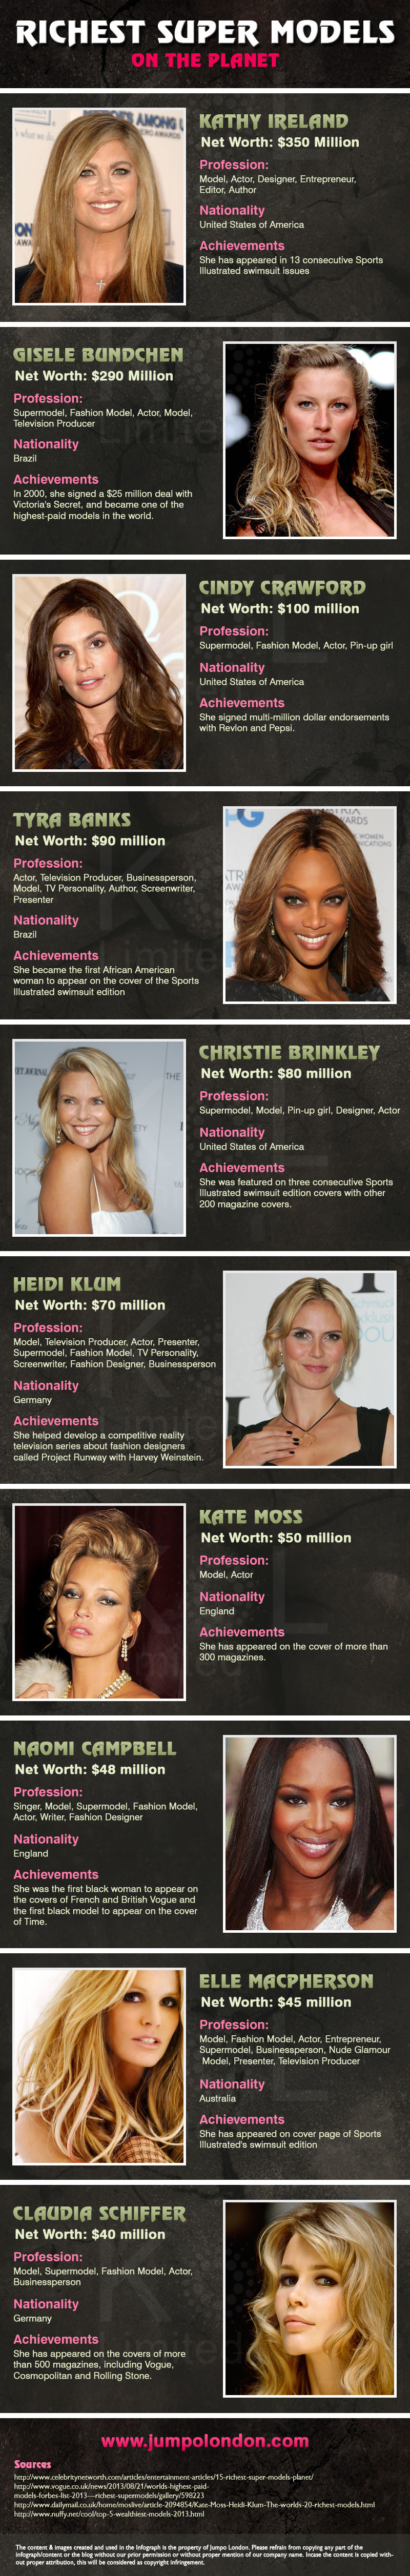 Infographic: Richest Super Models On The Planet #infographic